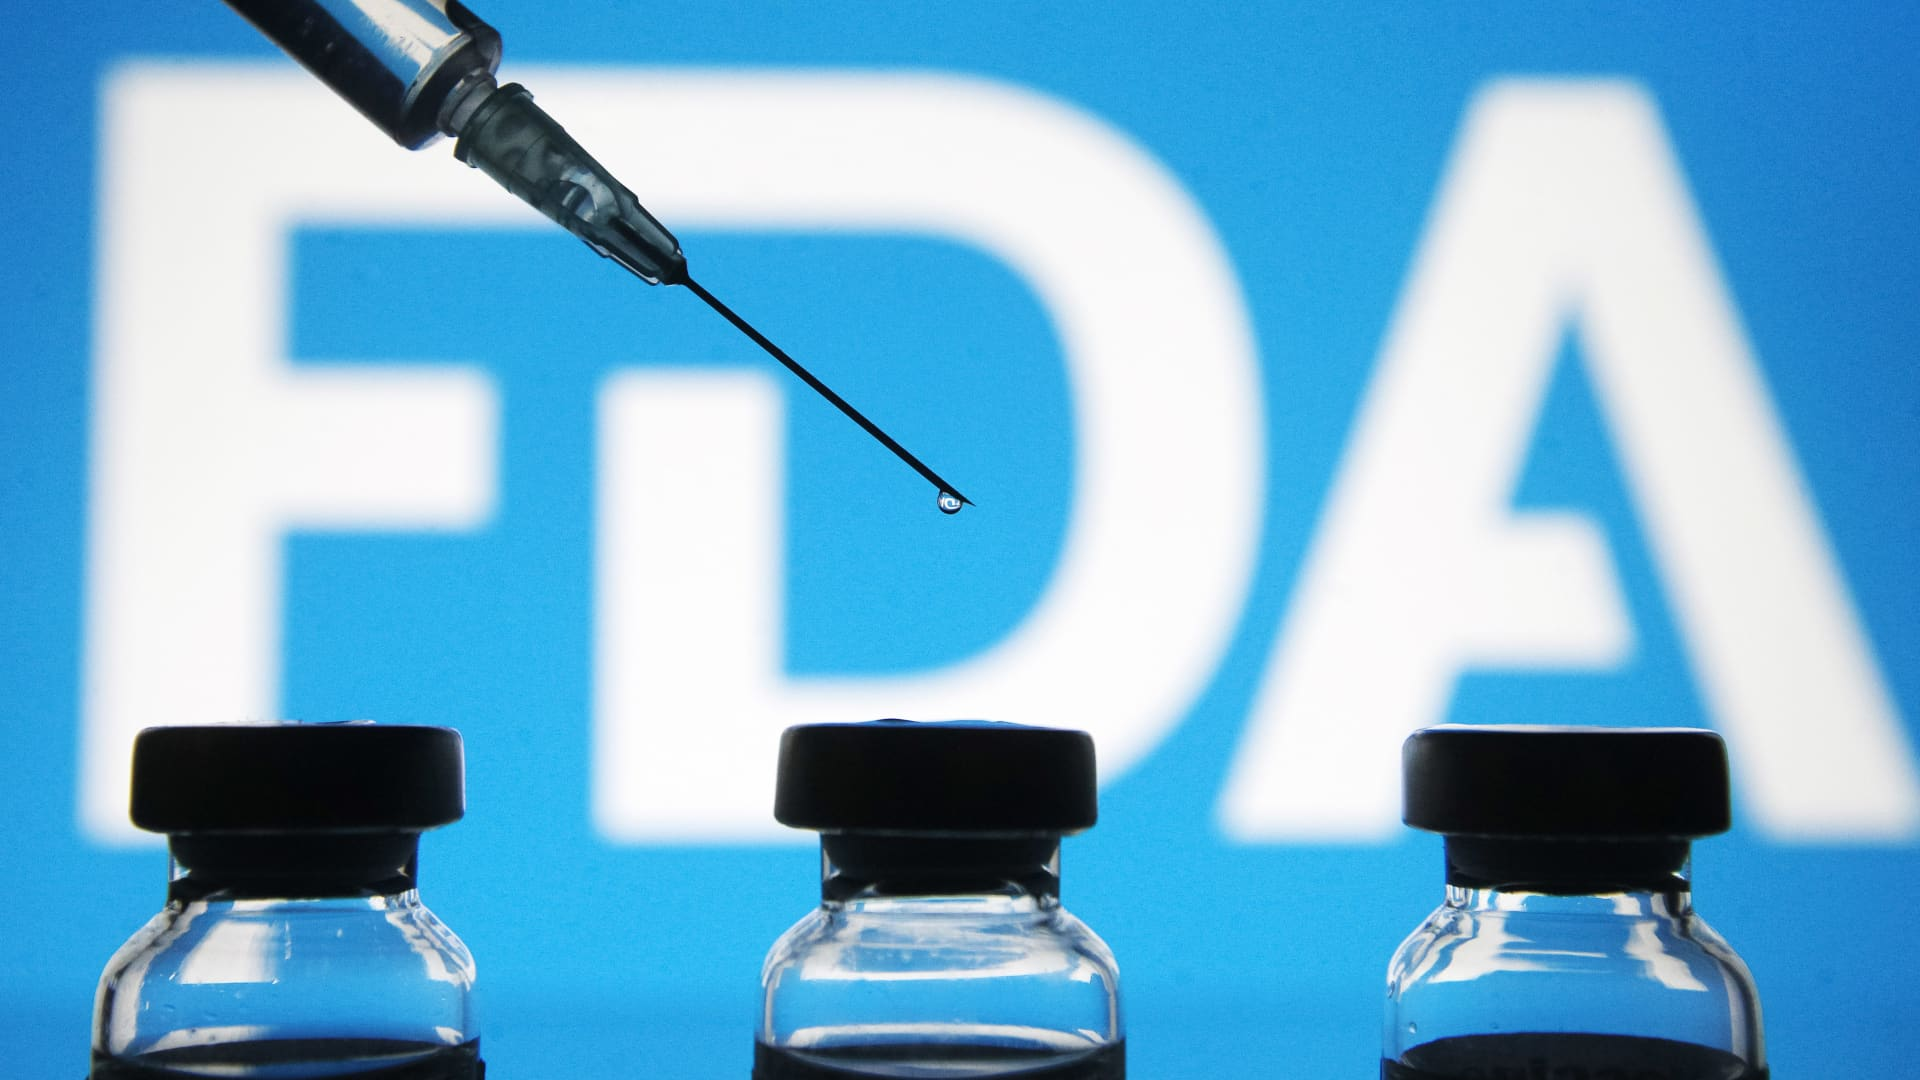 Vials and a medical syringe seen displayed in front of the Food and Drug Administration (FDA) of the United States logo. FDA finds the COVID-19 vaccine.